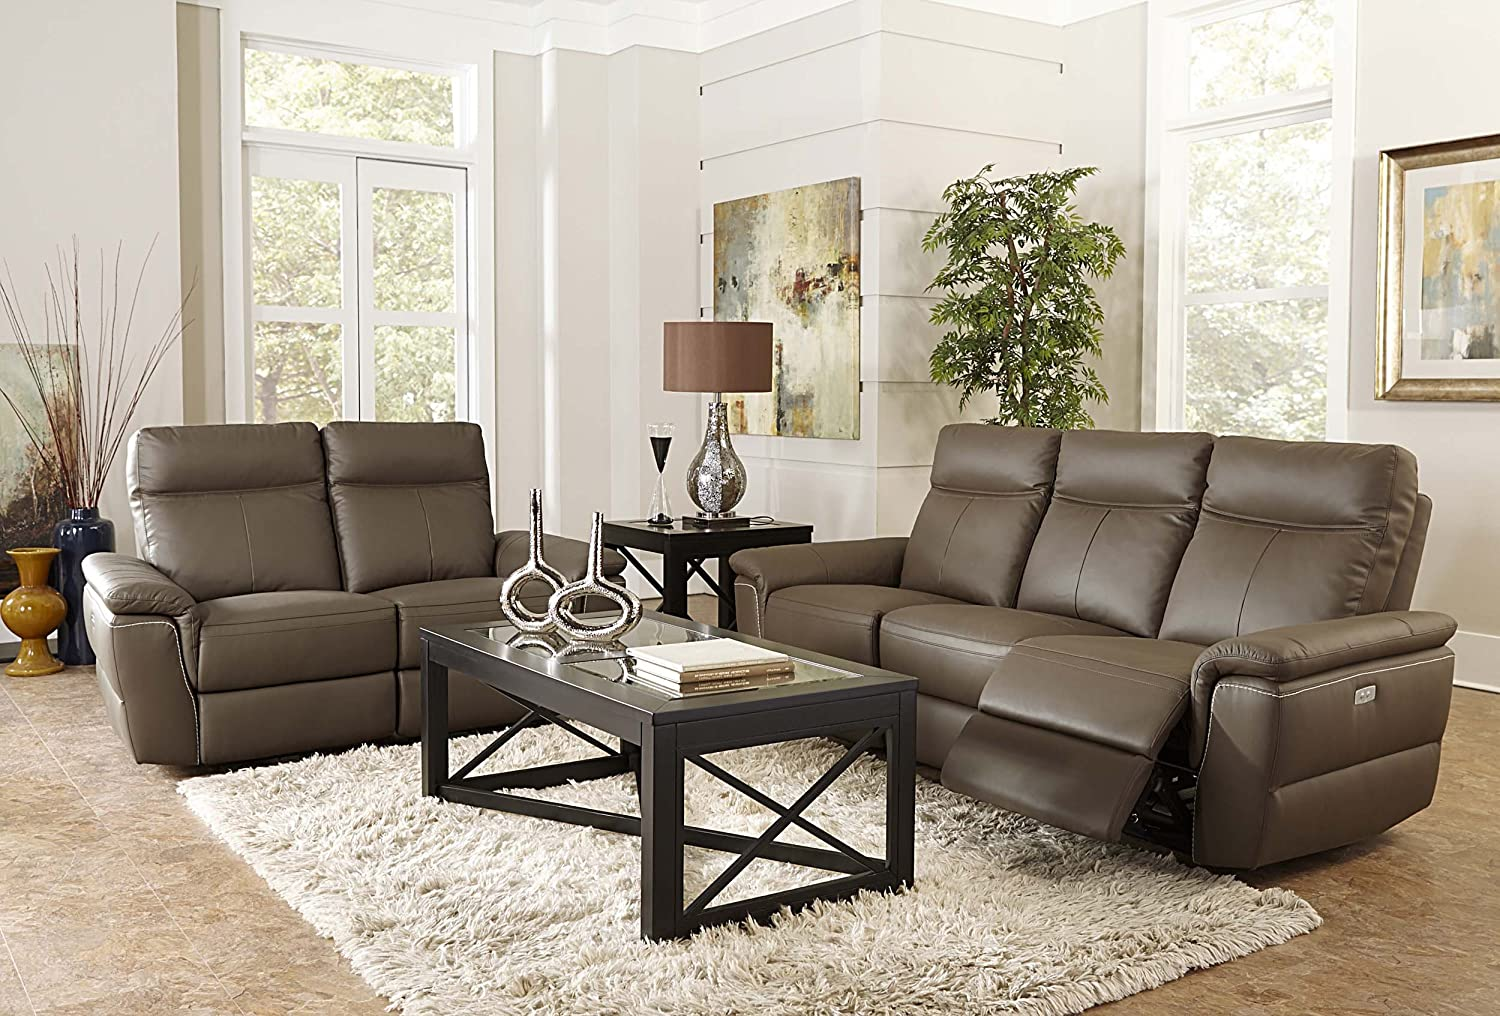 Homelegance Olympia Reclining Loveseat